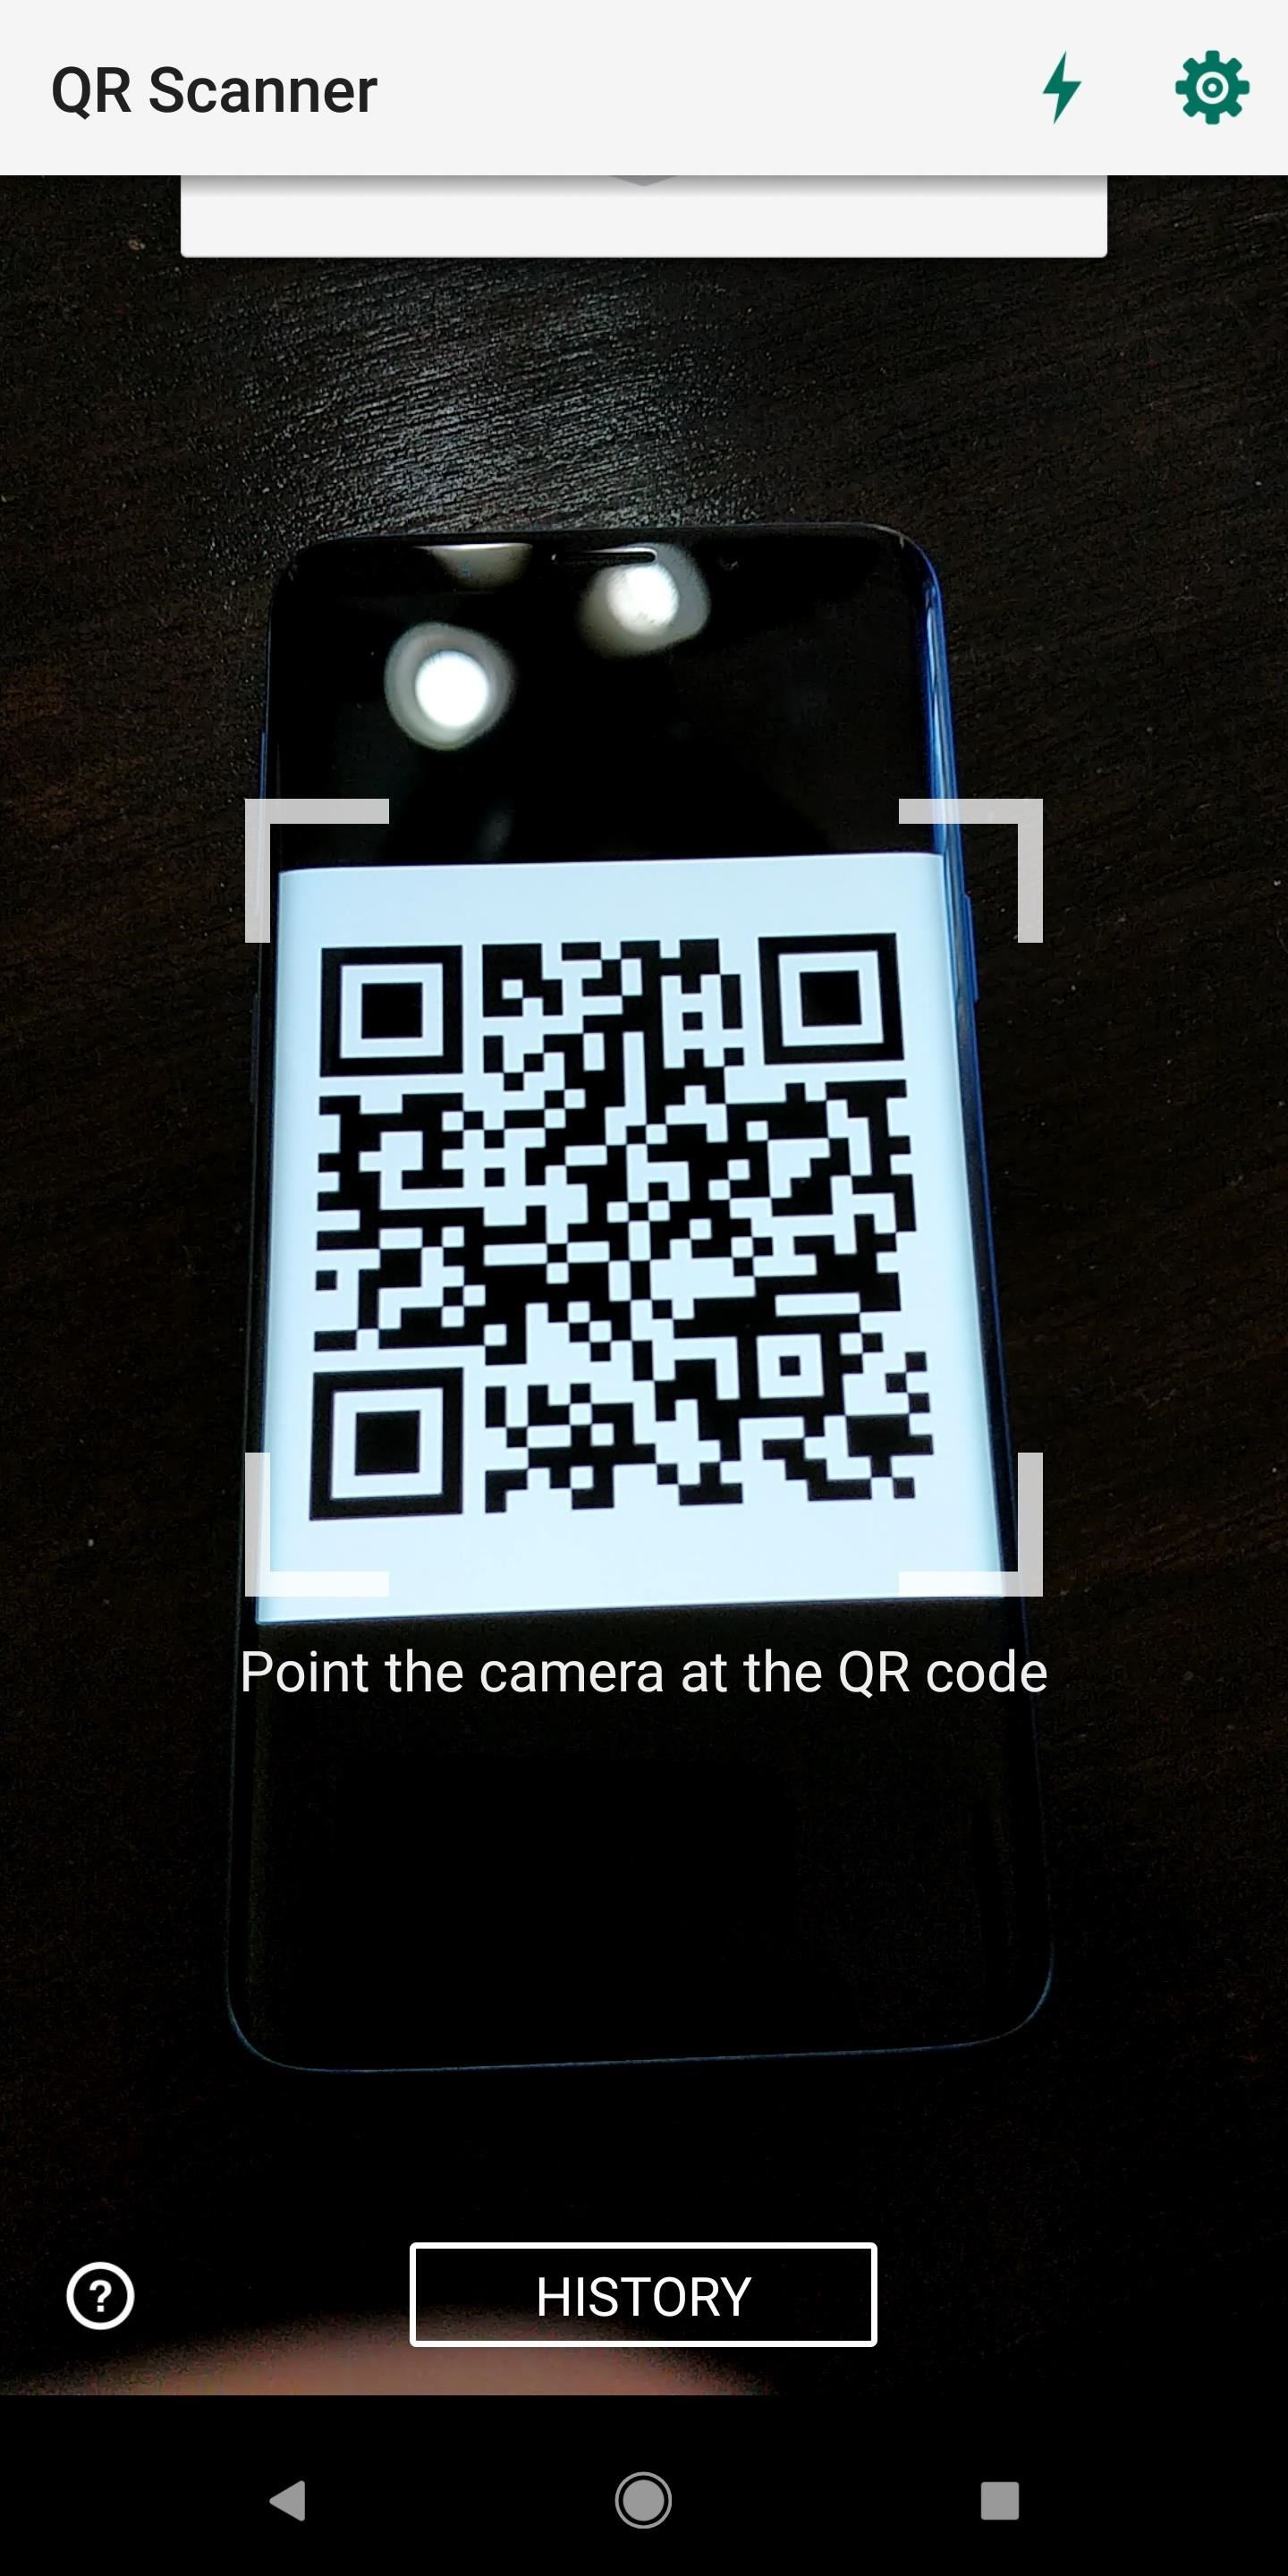 How to Easily Share Your Wi-Fi Password with a QR Code on Your